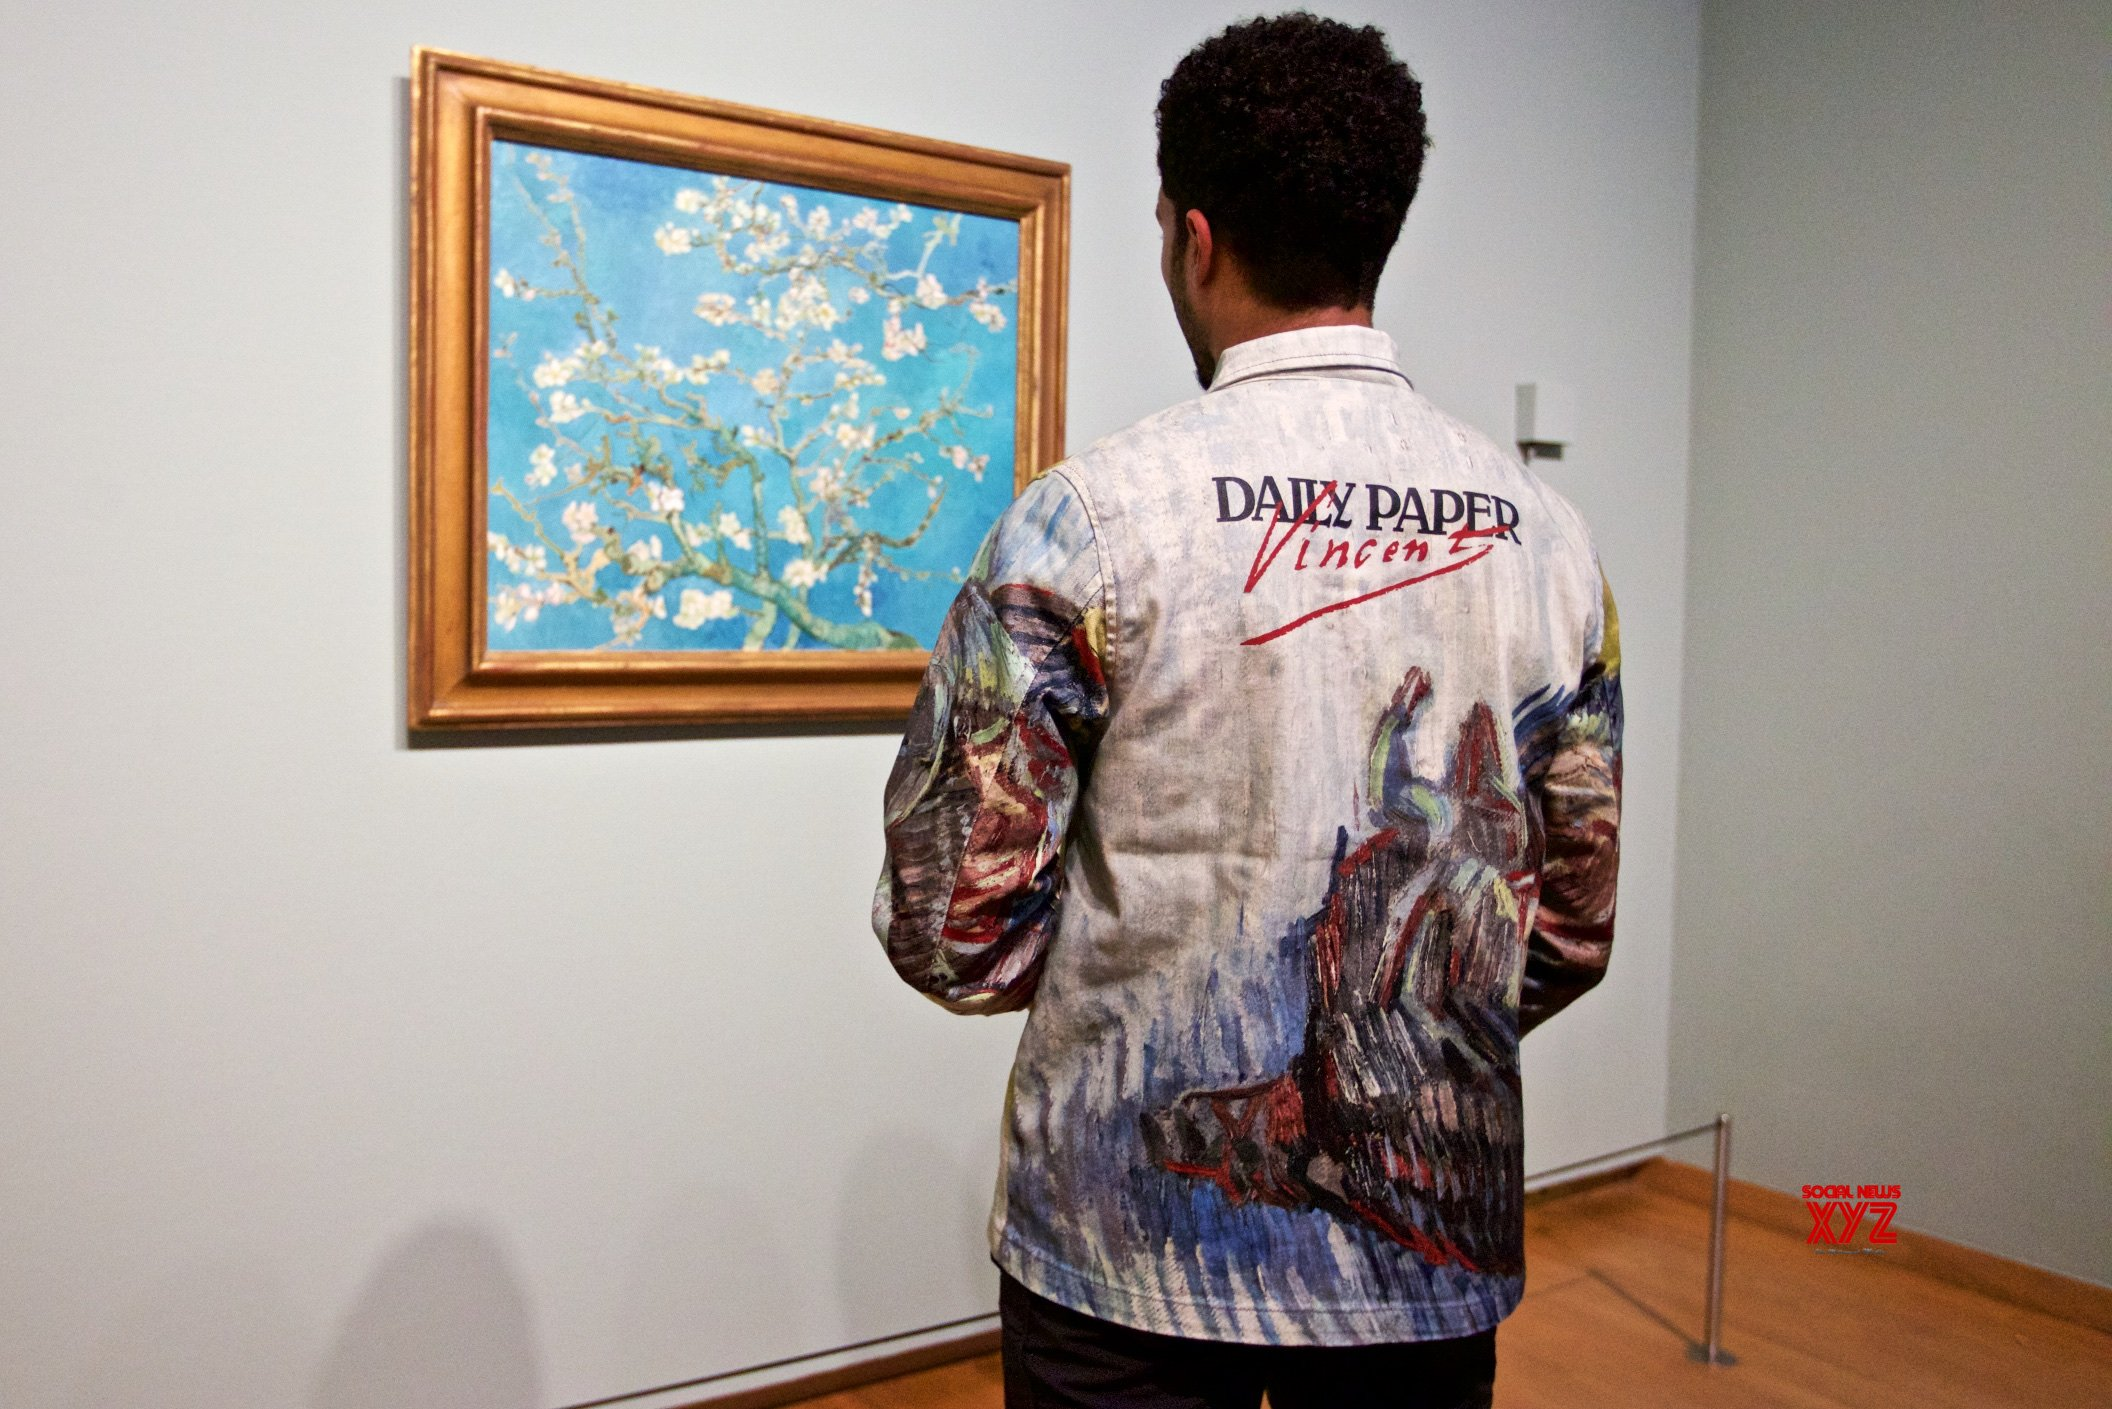 THE NETHERLANDS - AMSTERDAM - VAN GOGH MUSEUM - DAILY PAPER X VAN GOGH COLLECTION #Gallery